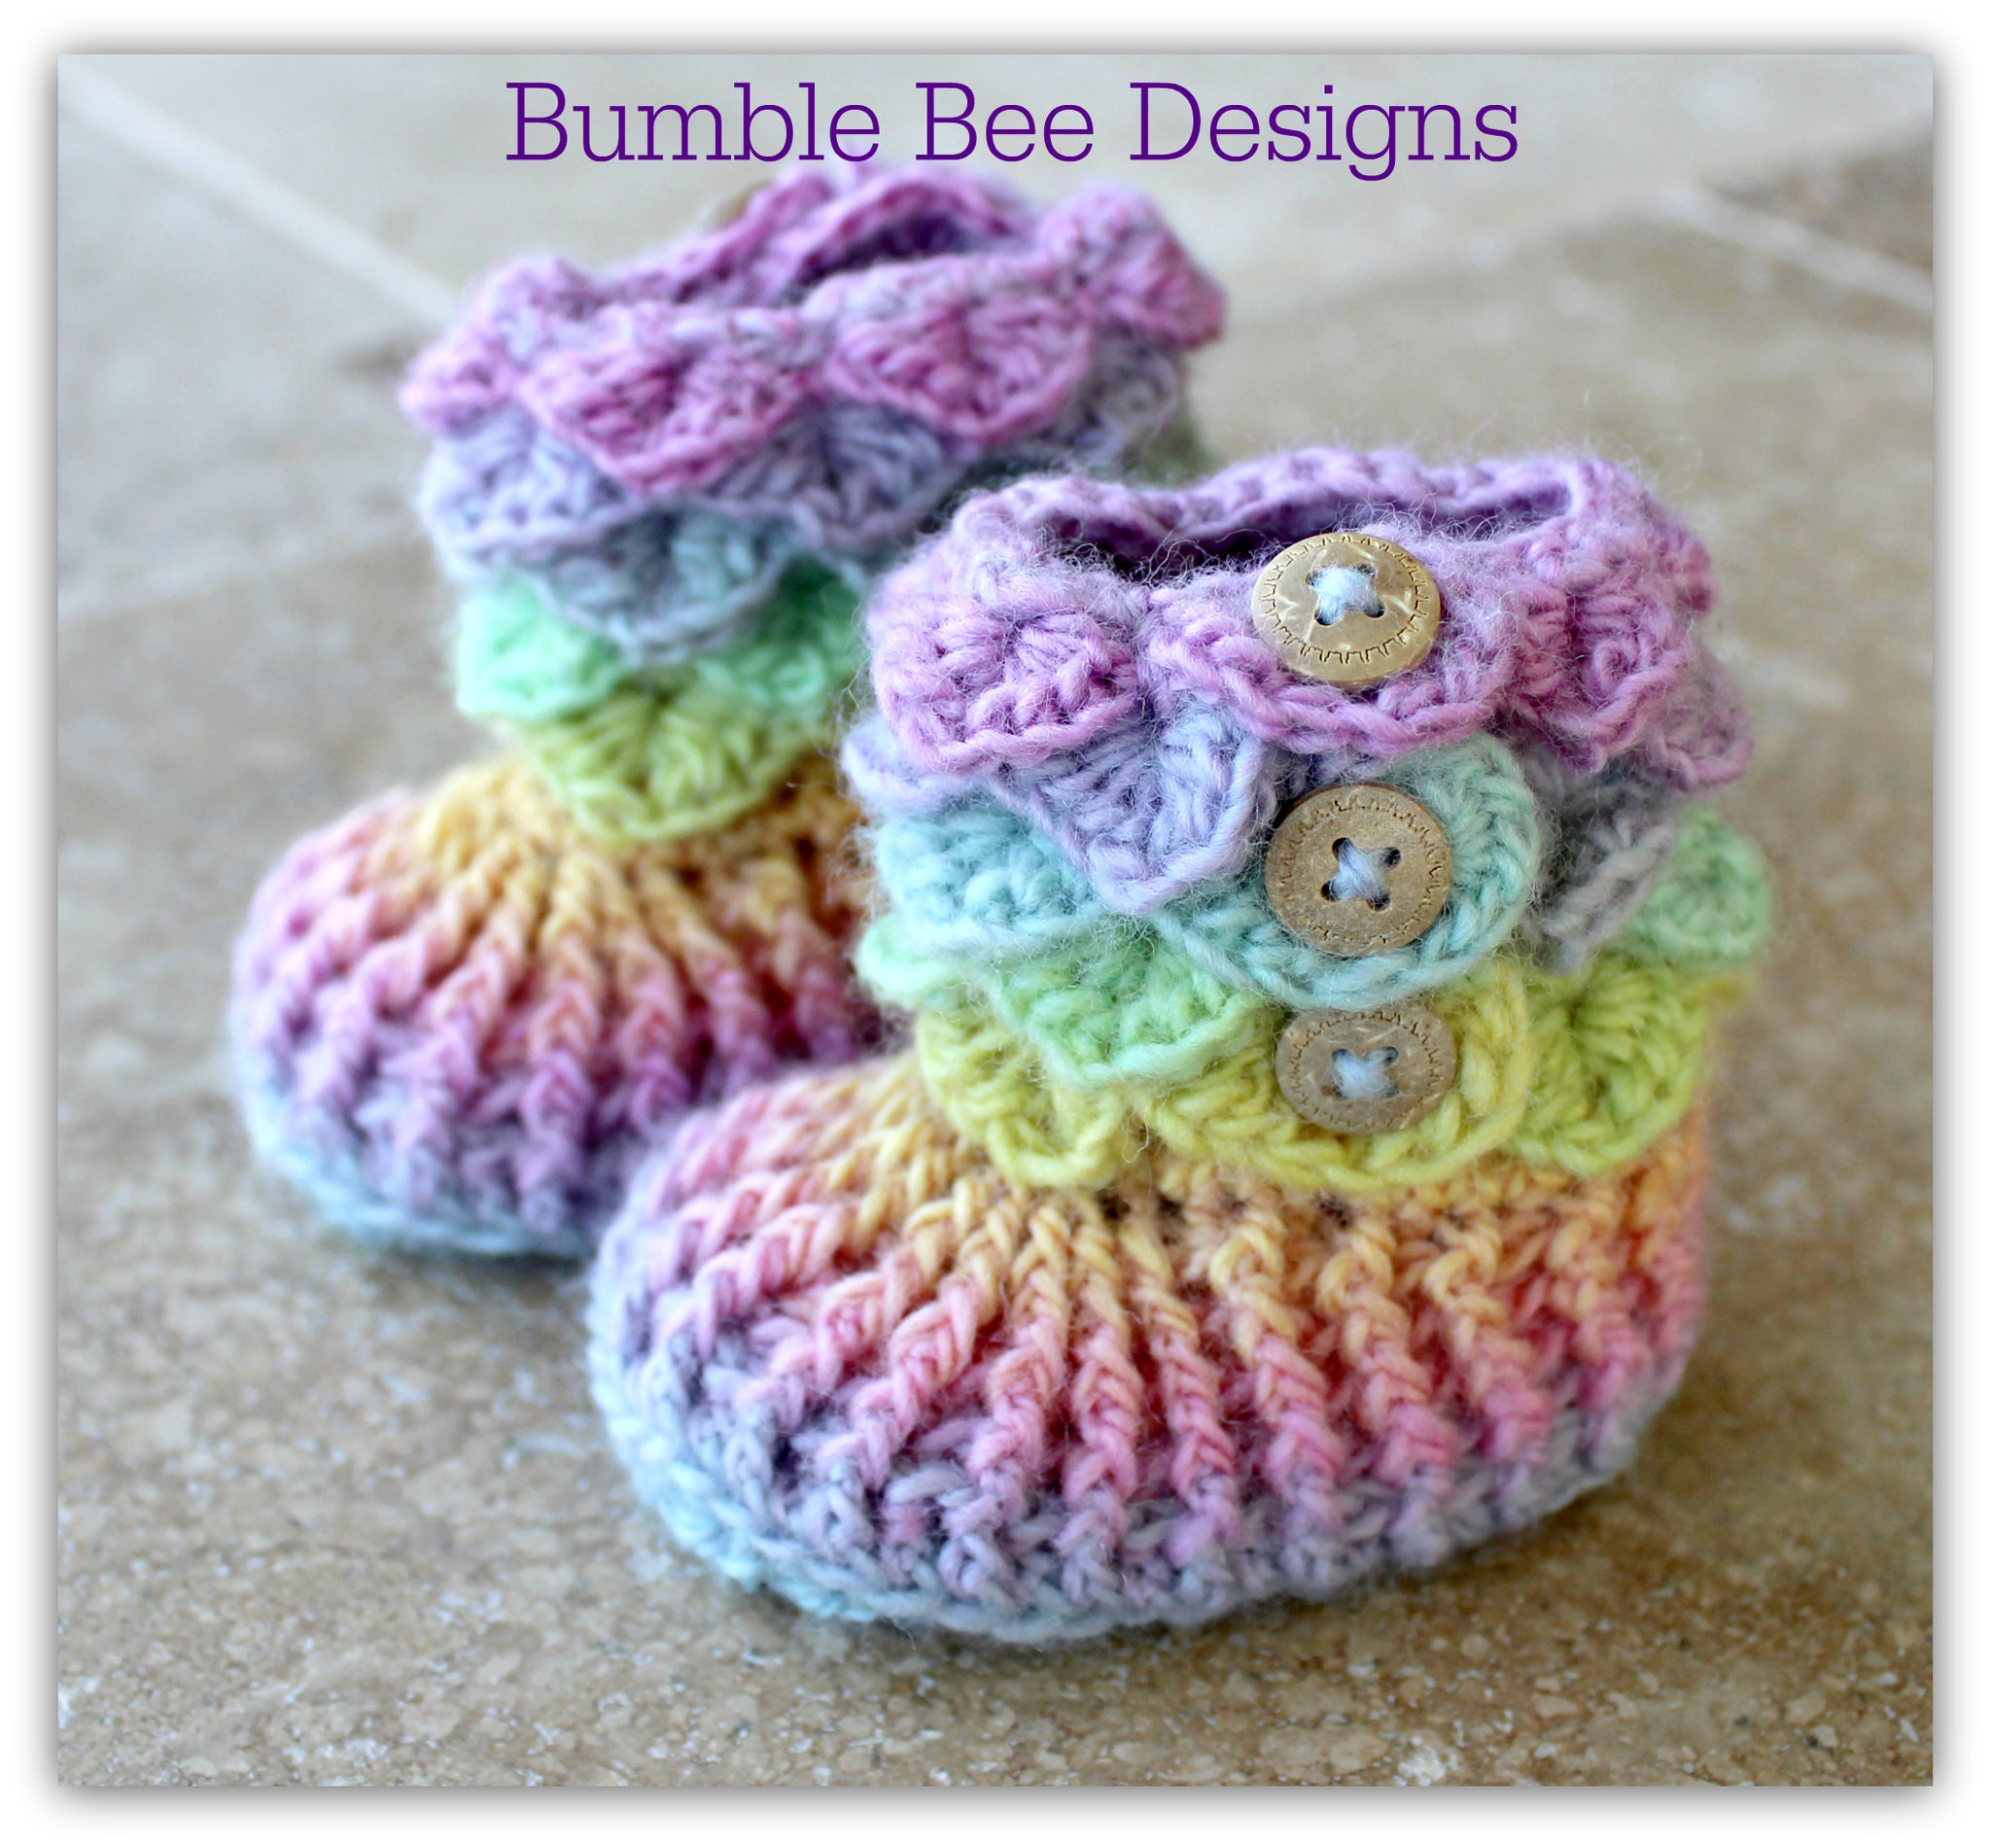 b0e583d00fdee Crocodile Stitch Baby Booties That Stay On, Baby Slippers, New Baby Gift,  Pink & Brown Rainbow Booties